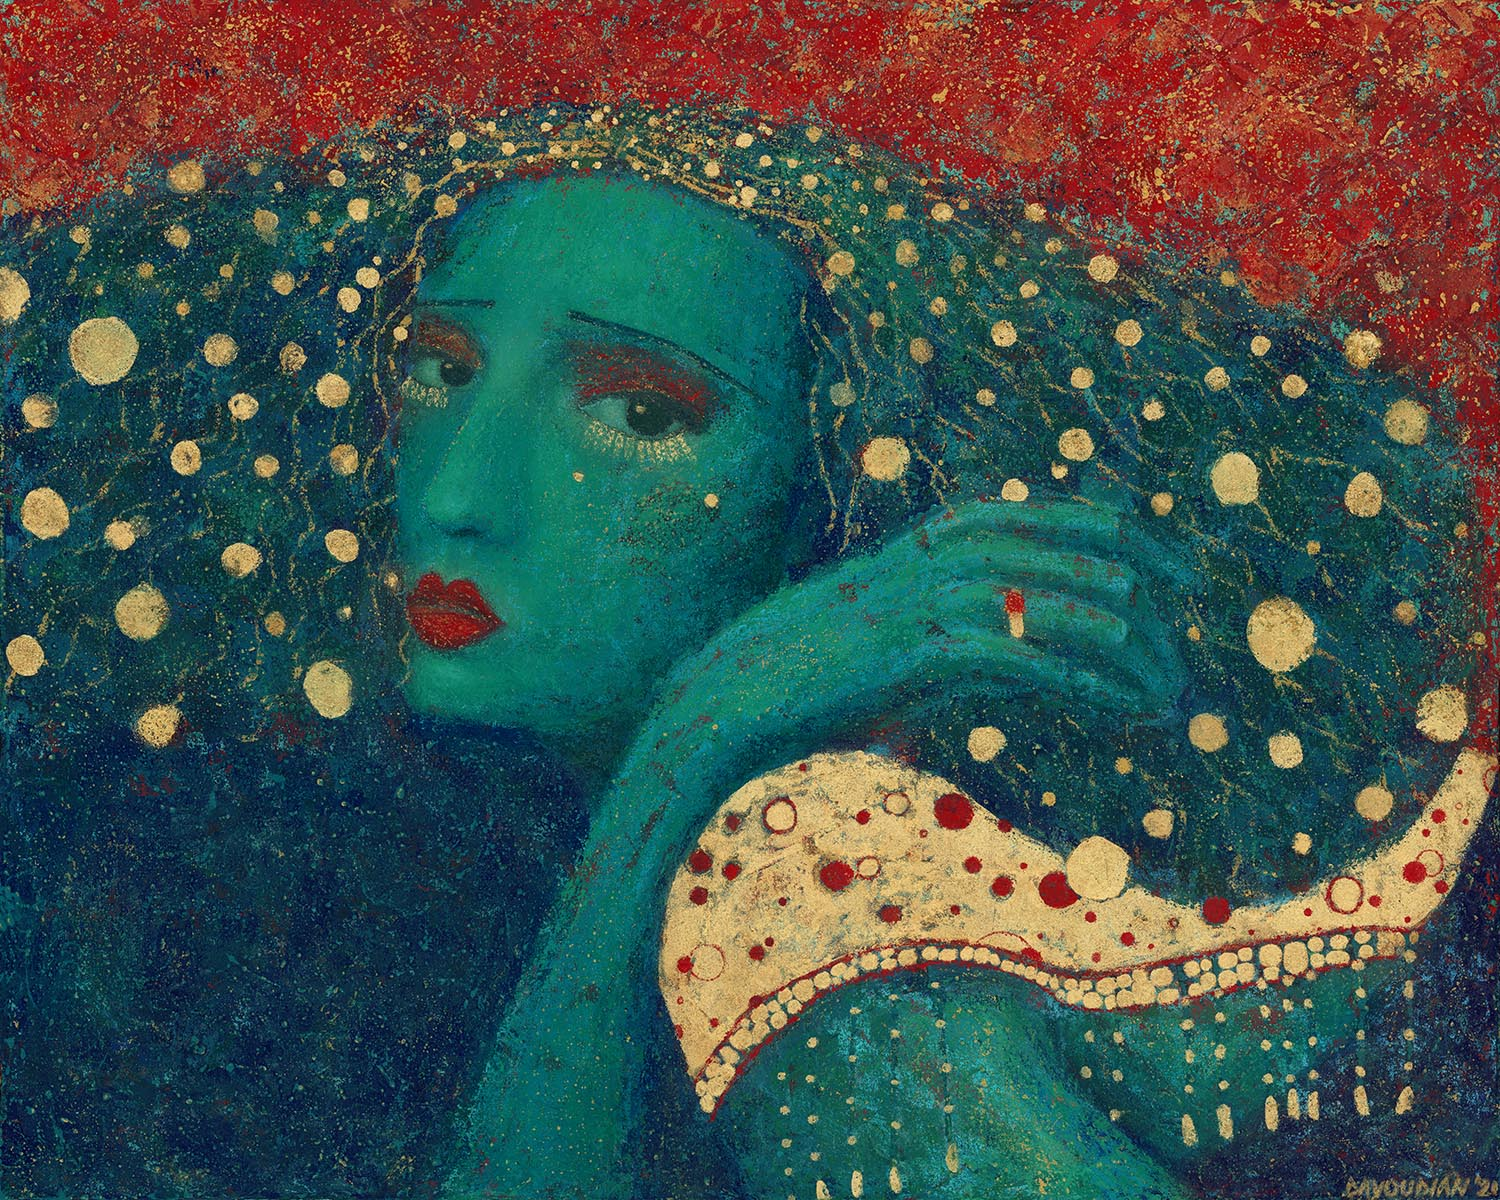 The Emerald Woman